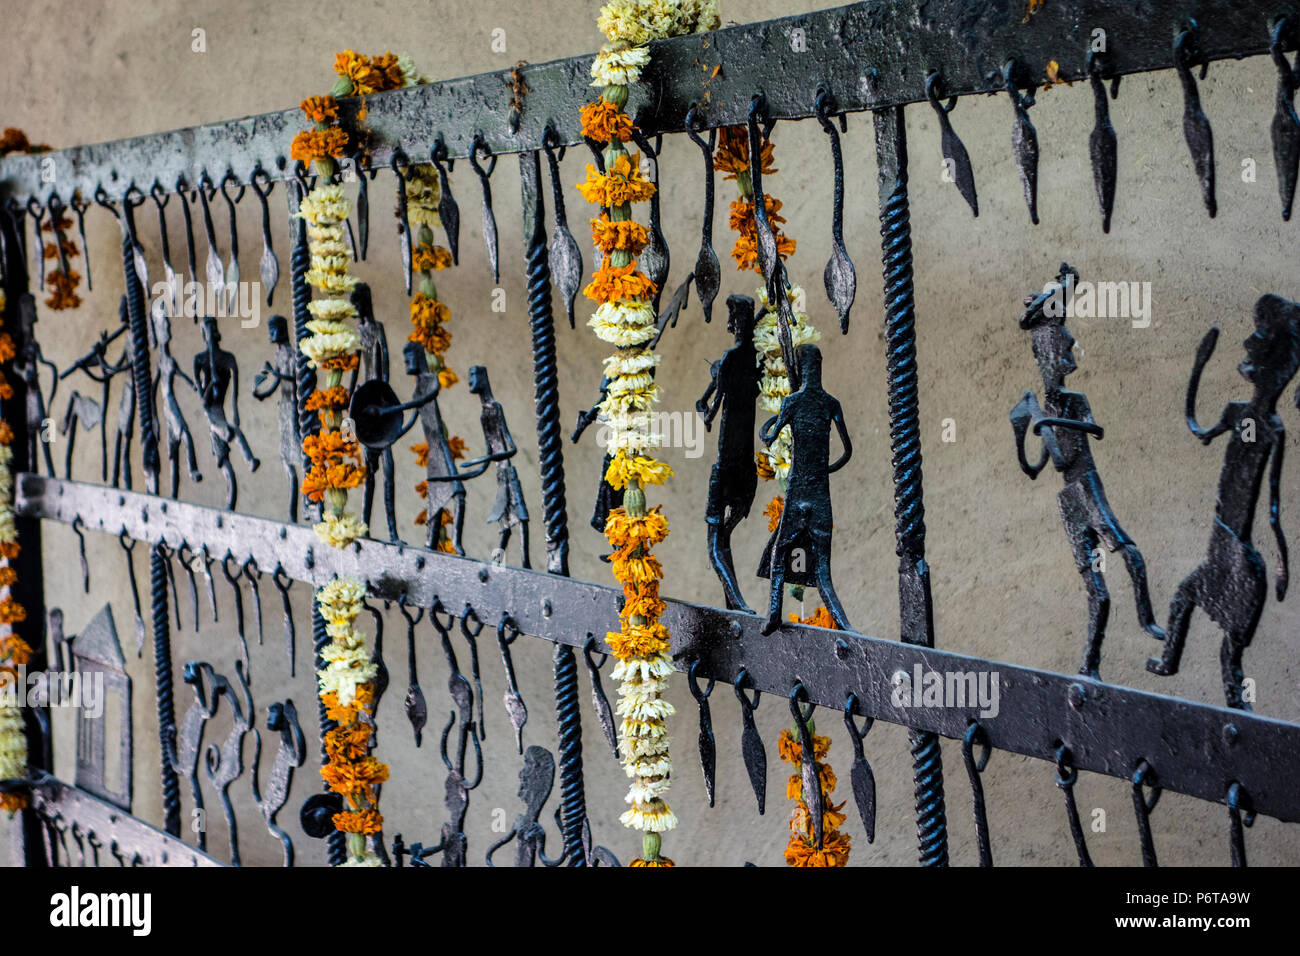 Exhibit of a wrought iron gate or fence from Bastar, Chhattisgarh hung with flower garlands in the National Crafts Museum, New Delhi, India - Stock Image